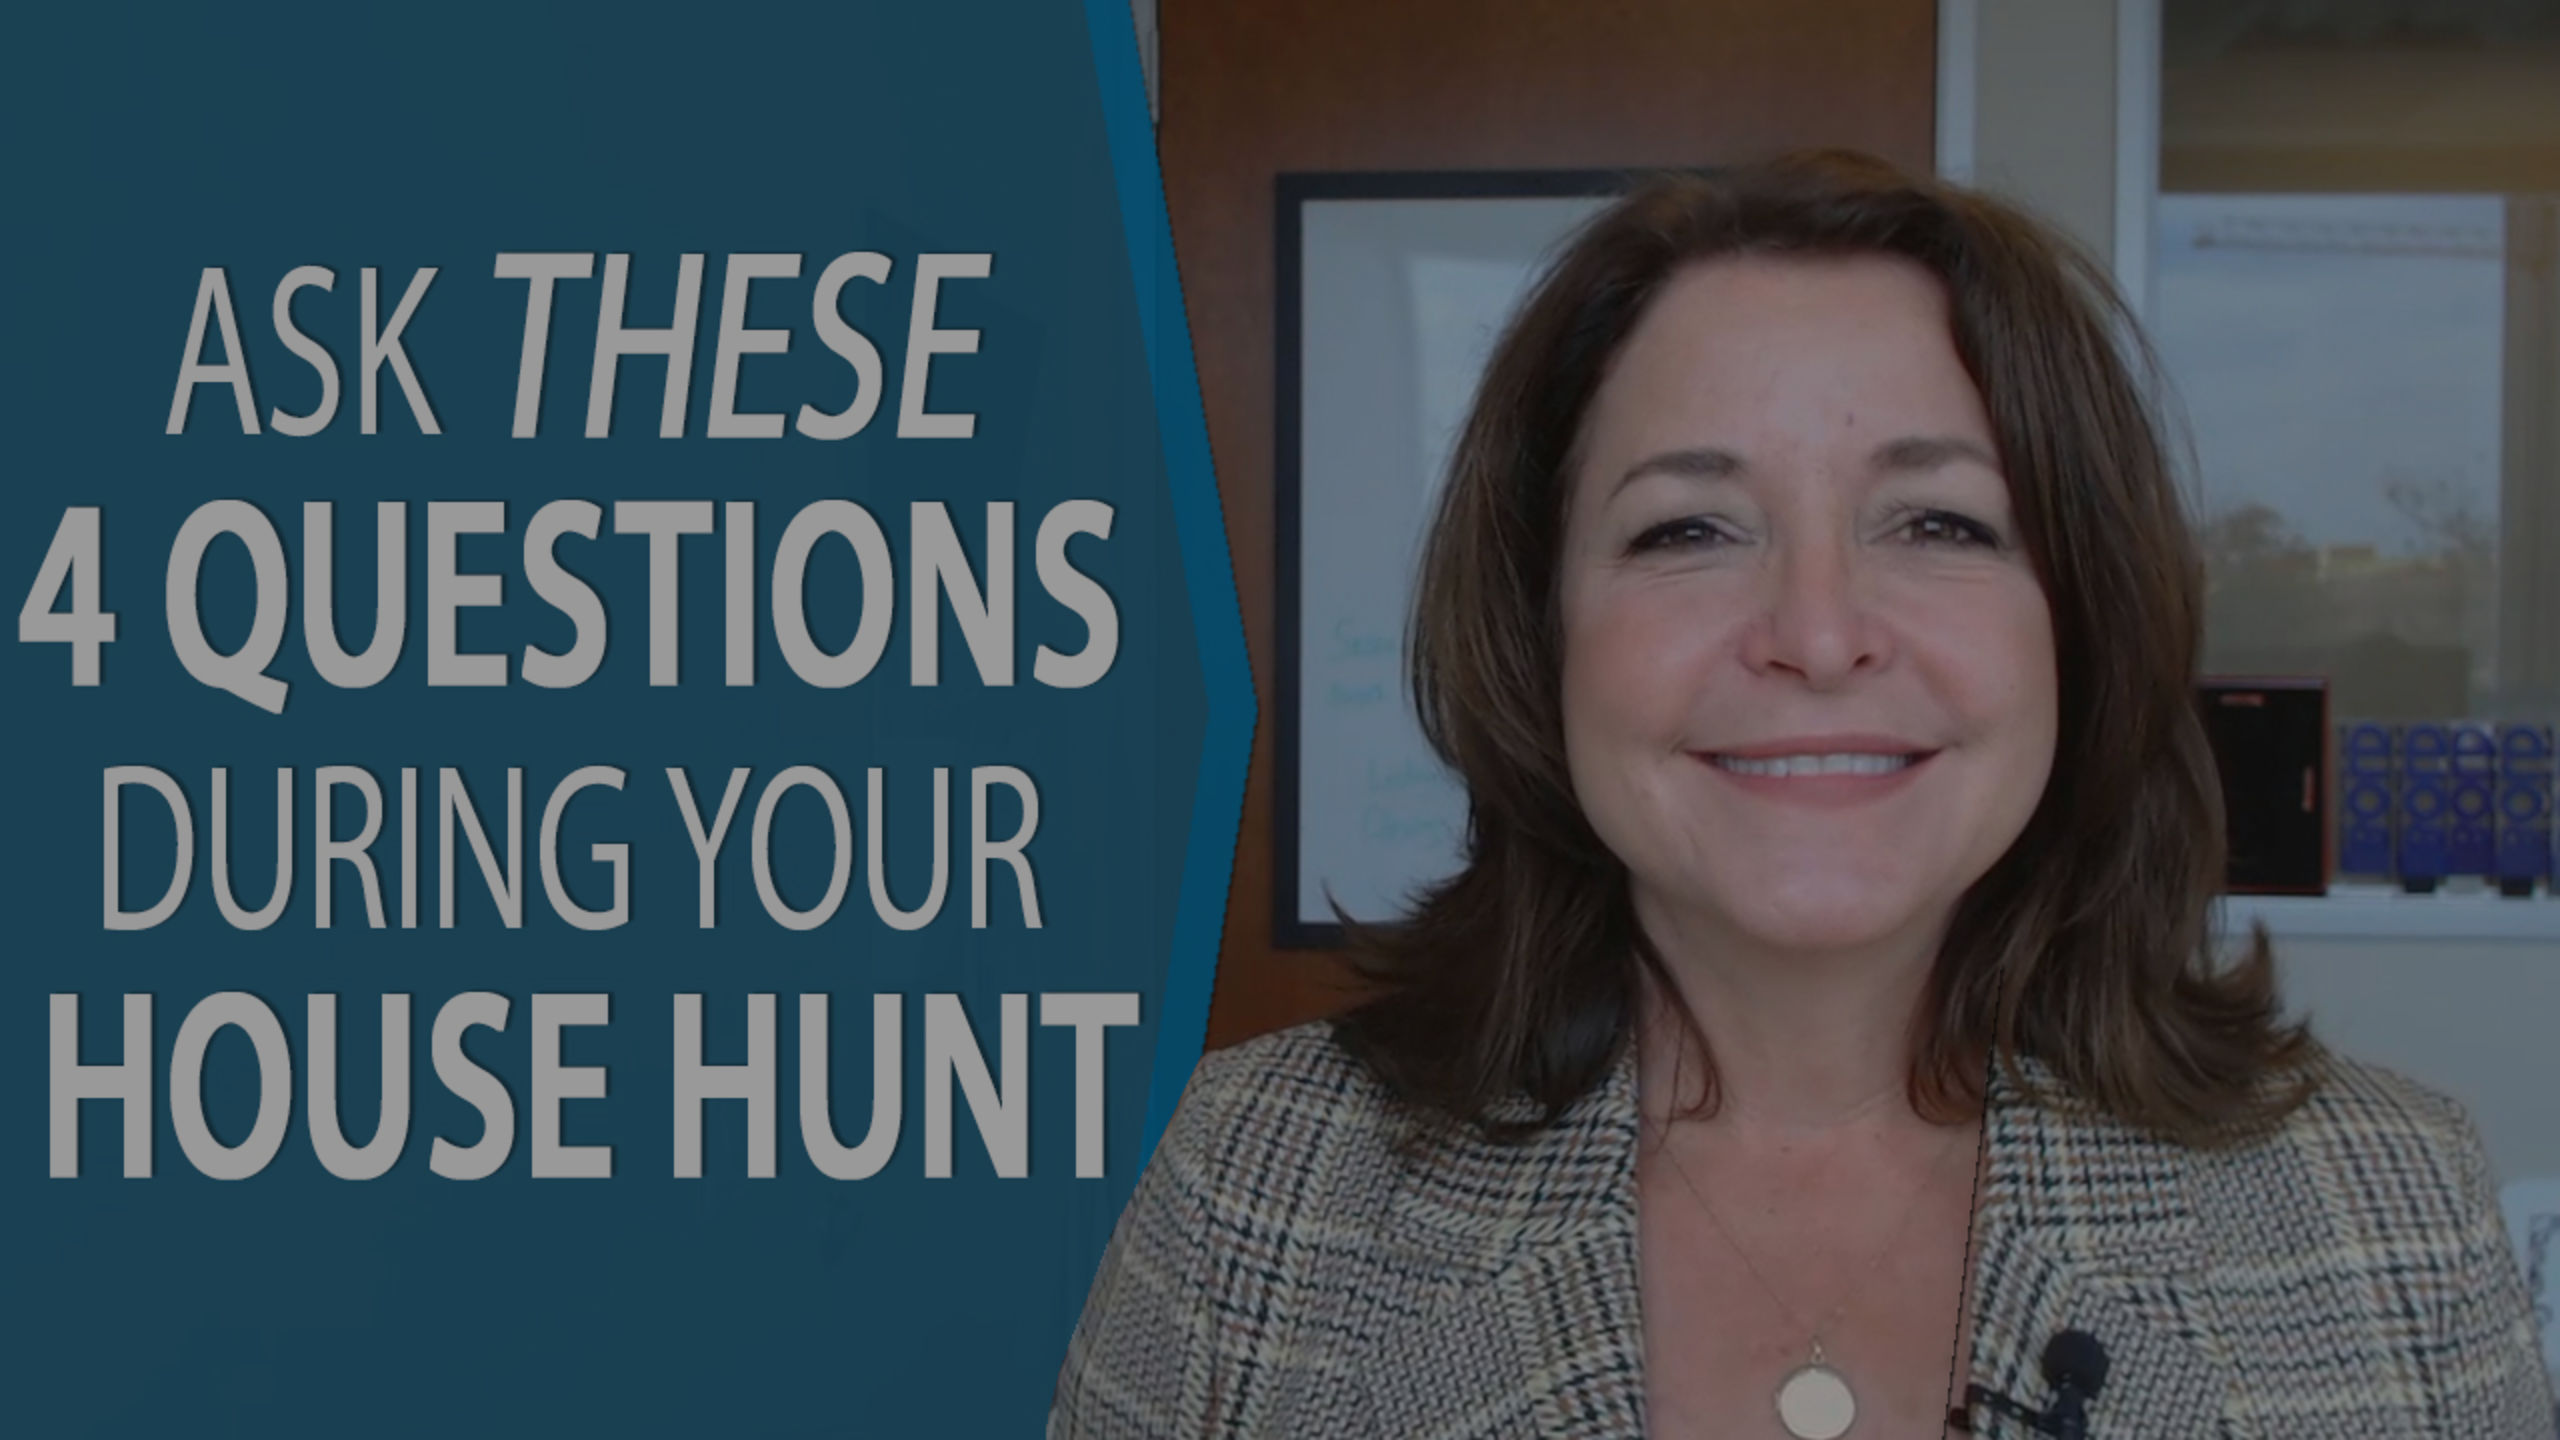 4 Questions to Ask When Hunting for a Home